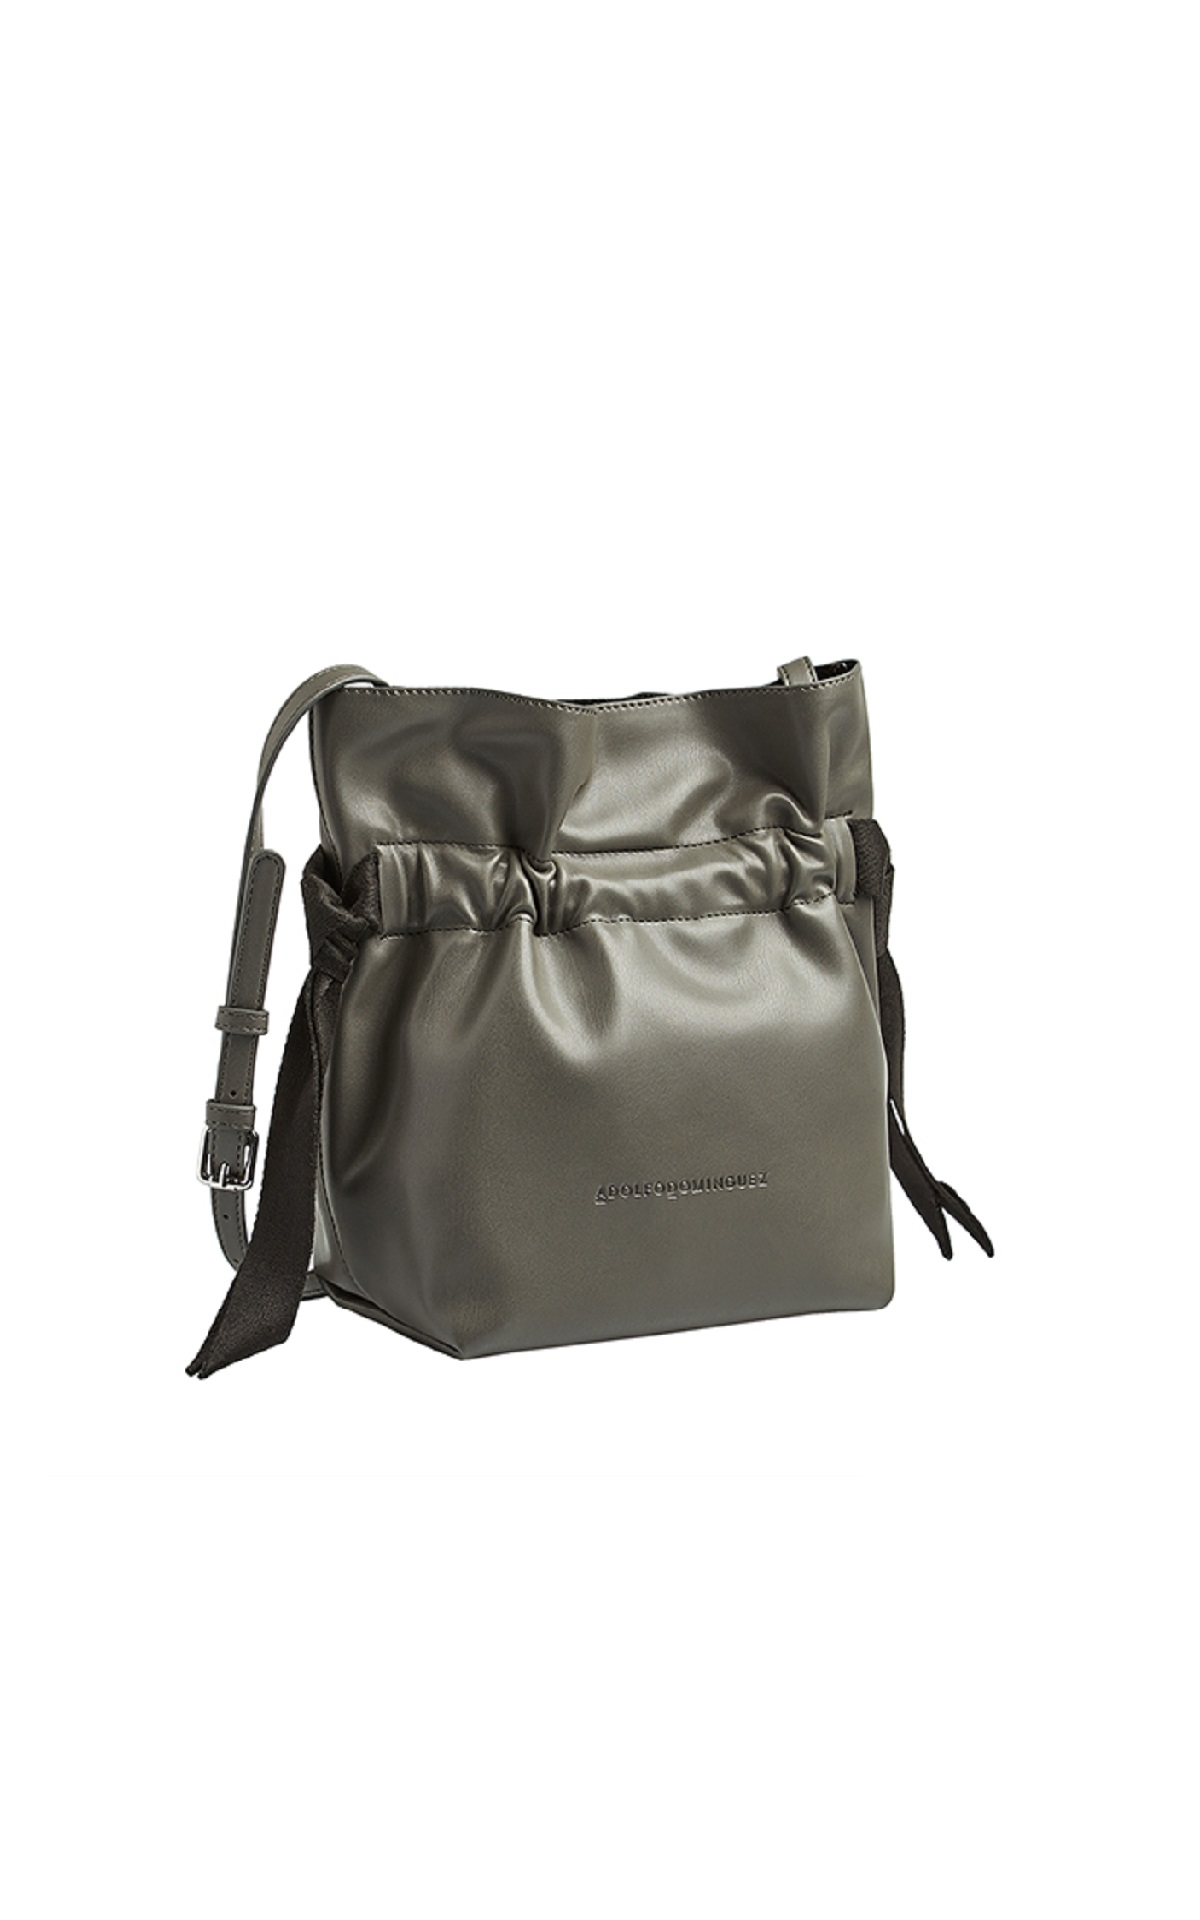 Khaki leather bucket bag Adolfo Dominguez